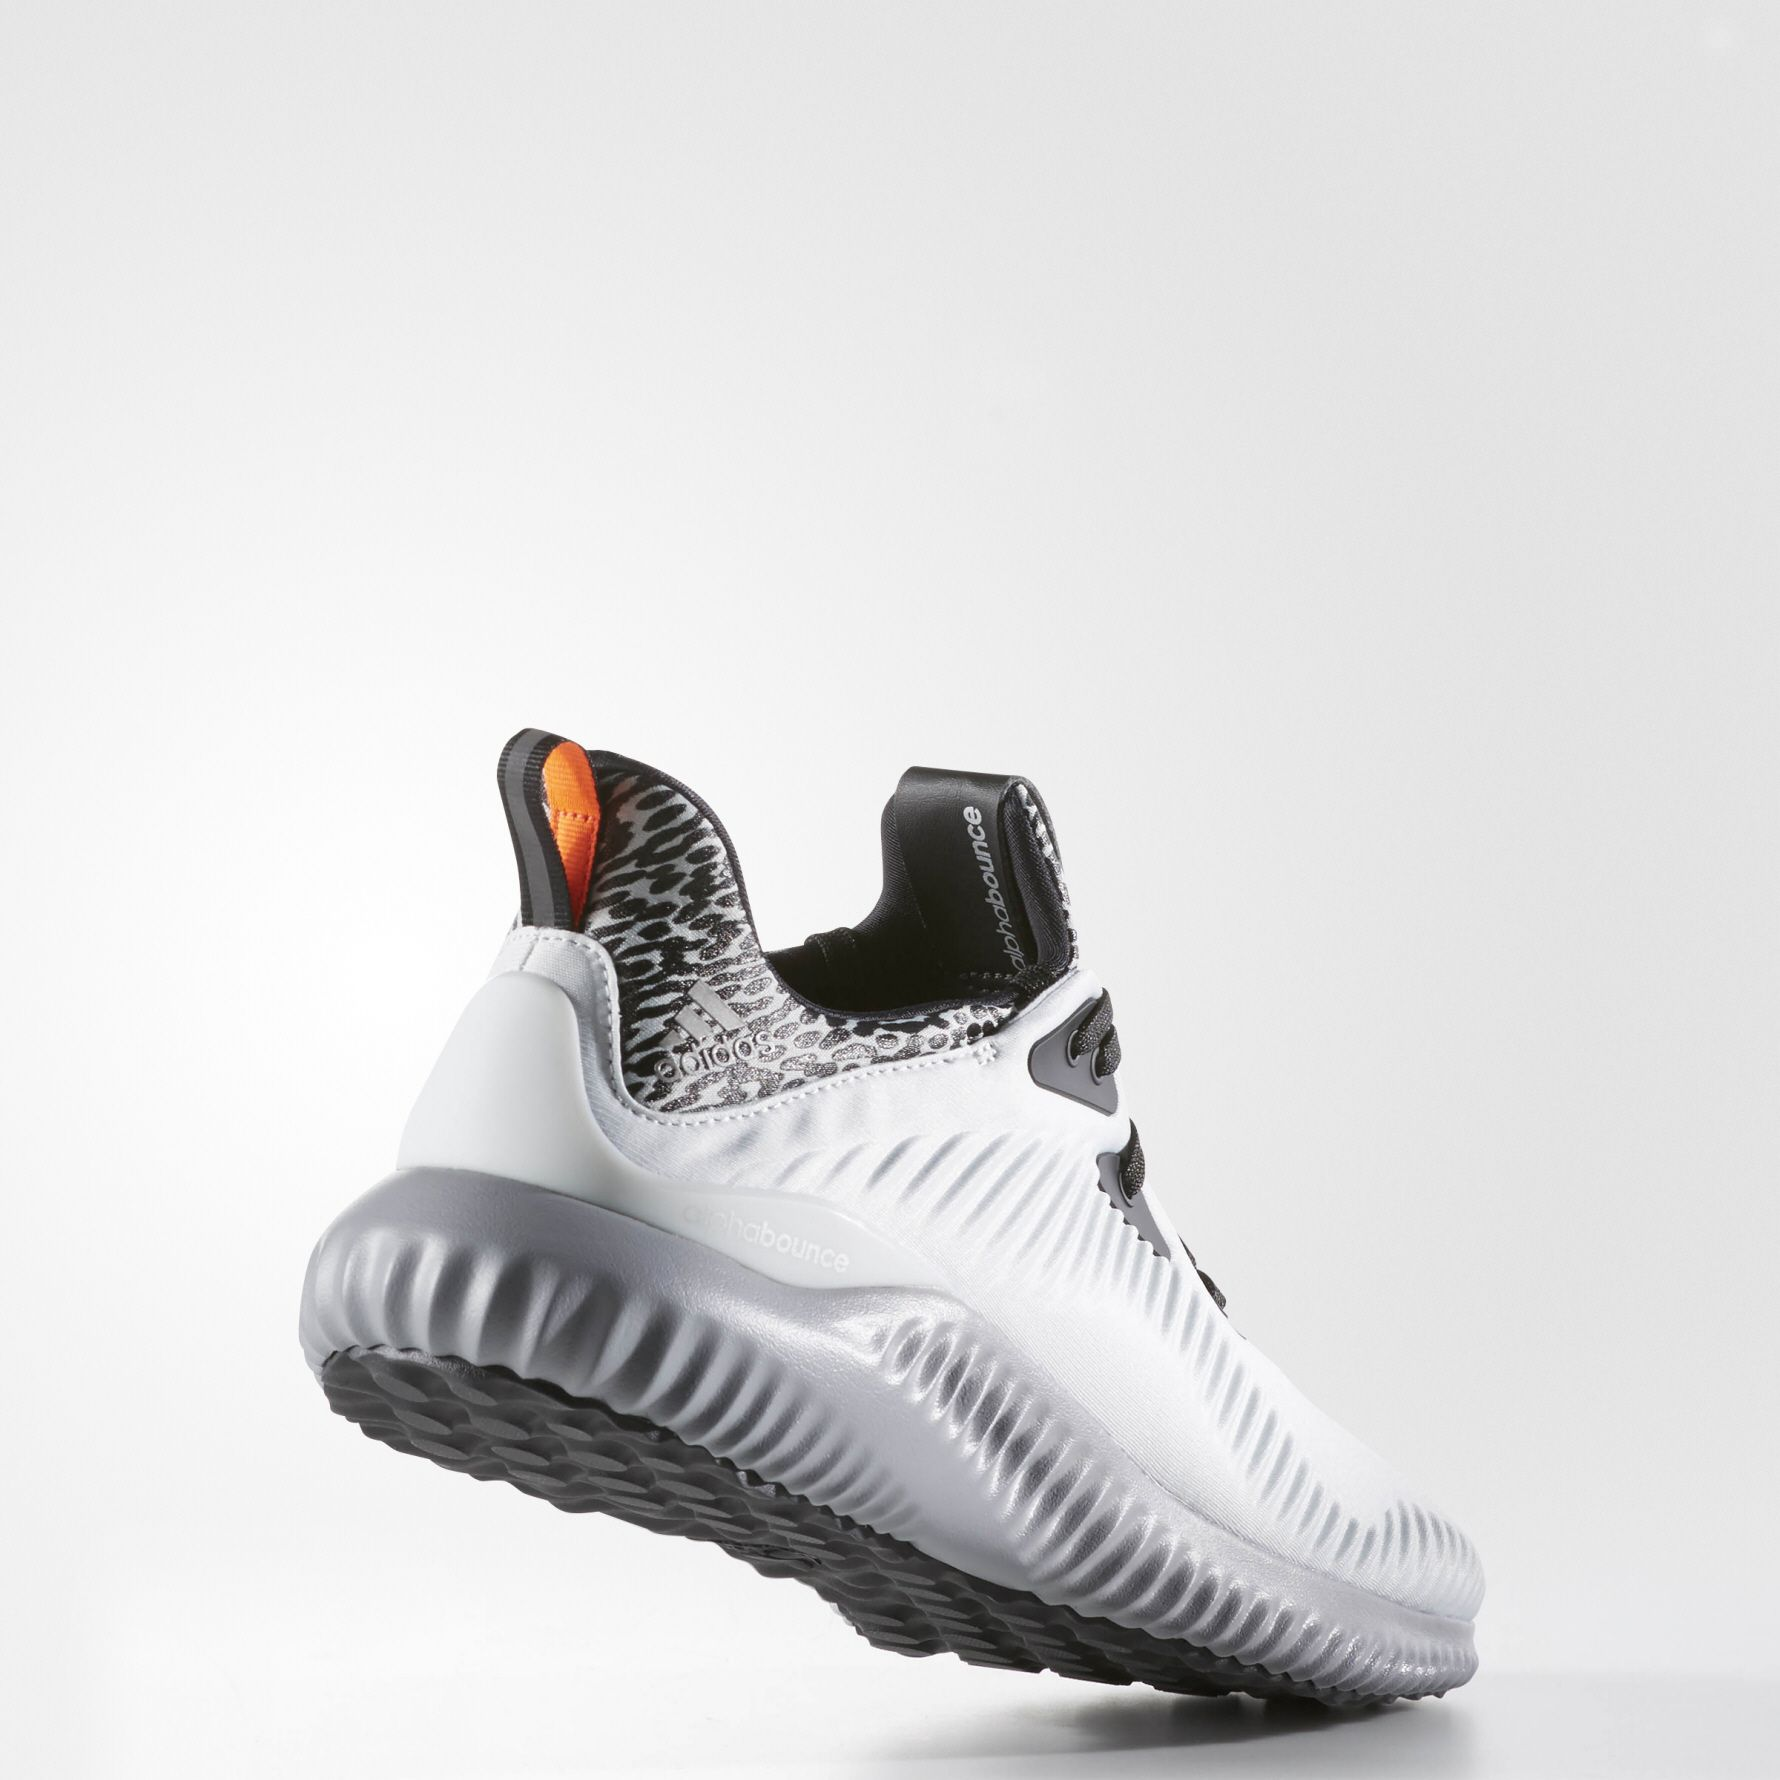 Under Armour Clutchfit Drive 2 Low - Emmanuel Mudiay PE | My Shoes |  Pinterest | Emmanuel mudiay and Armours